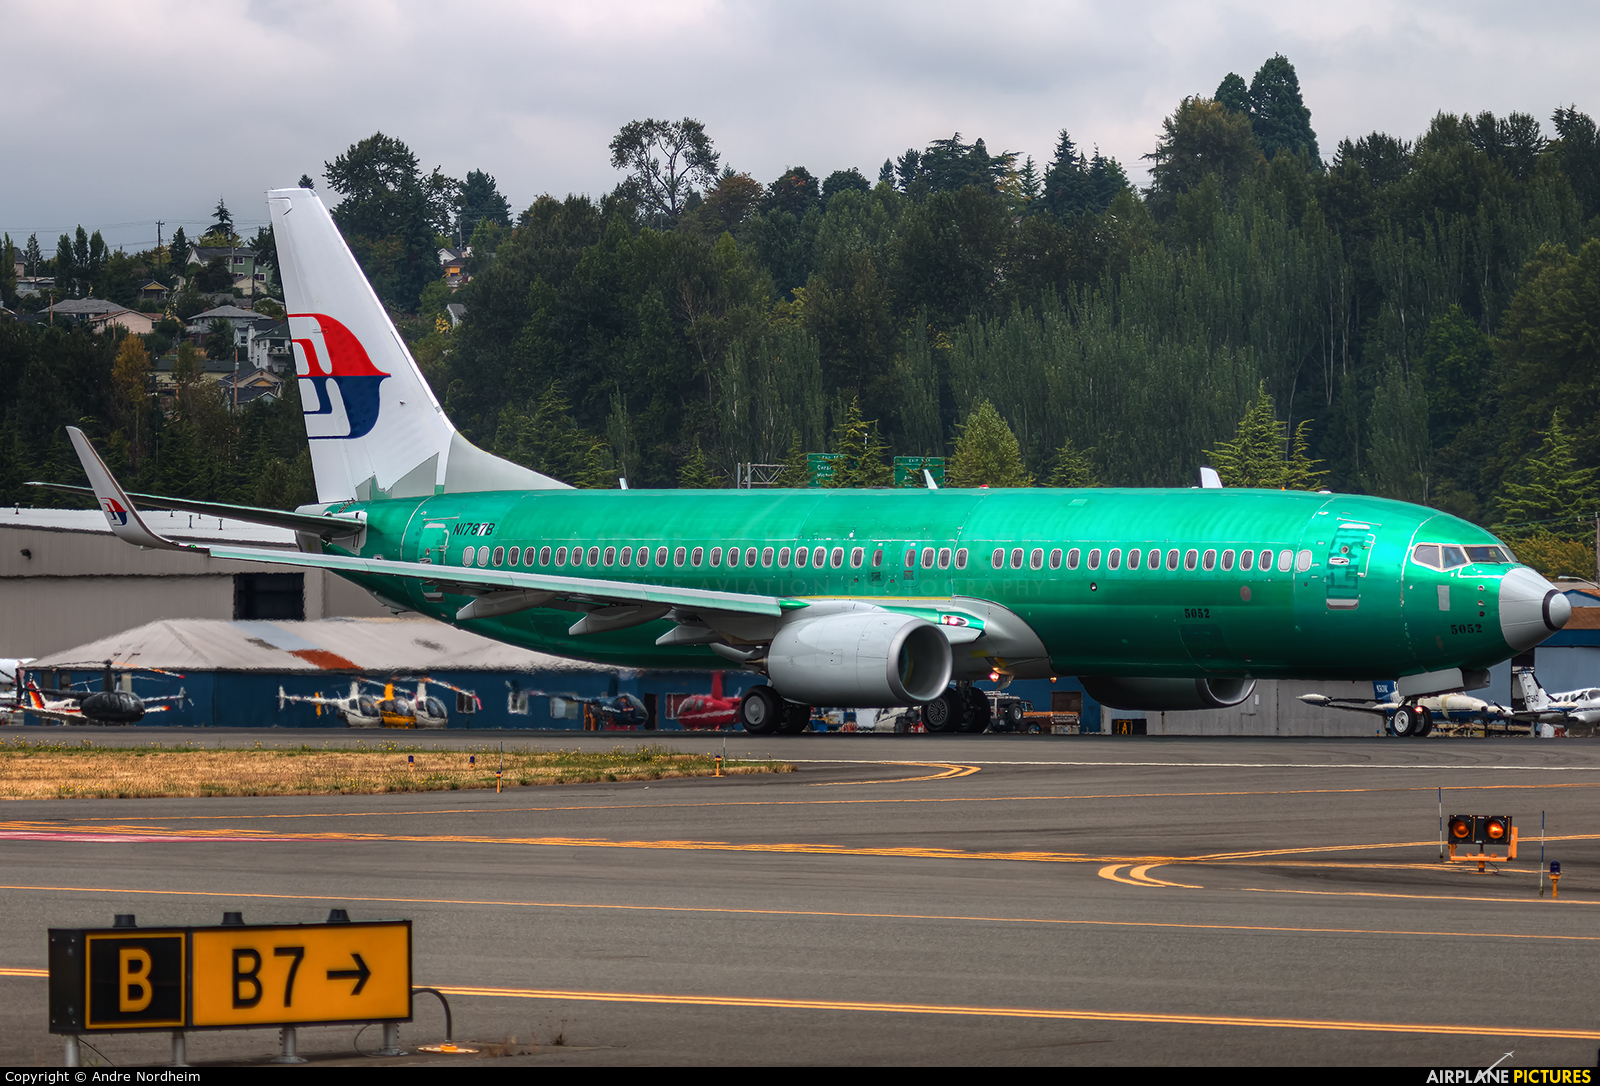 Malaysia Airlines N1787B aircraft at Seattle - Boeing Field / King County Intl